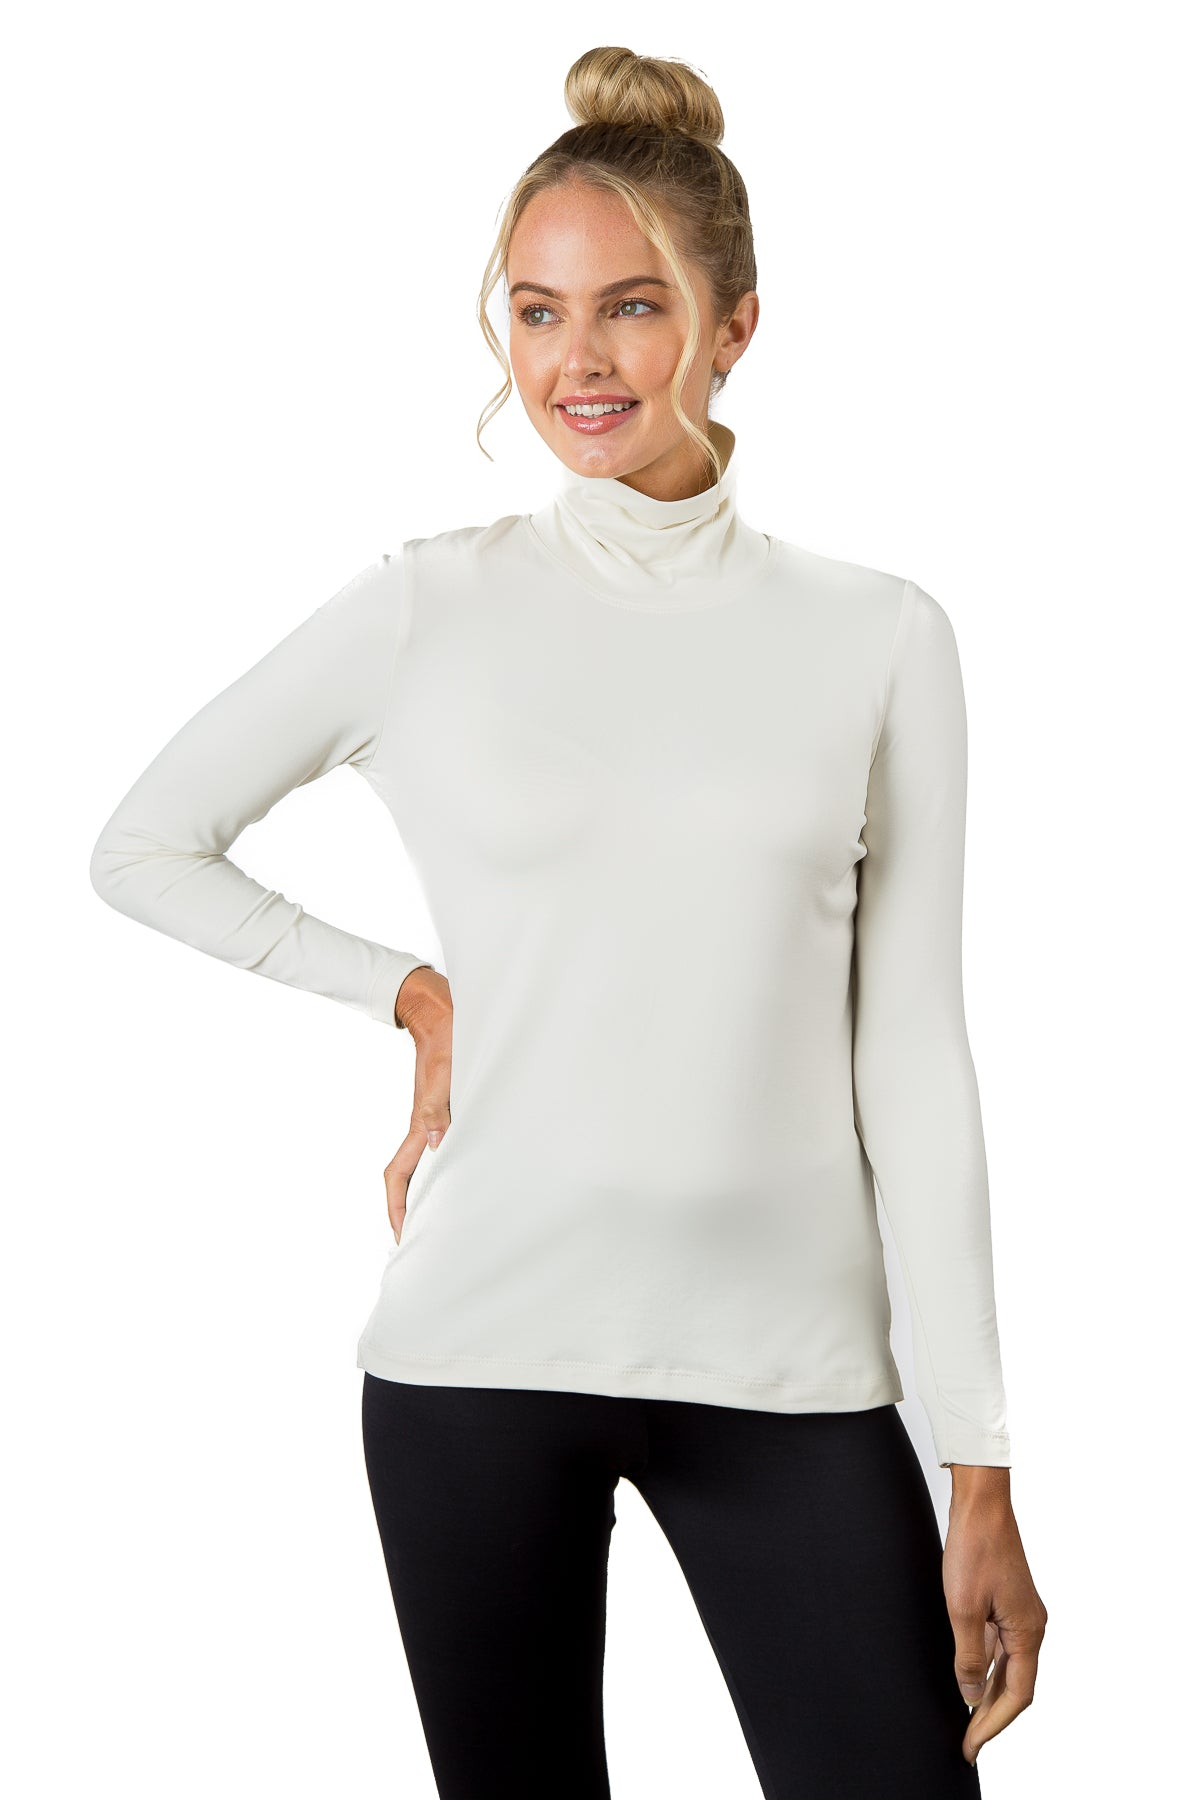 LIMITED COLORS: The Classic Turtleneck